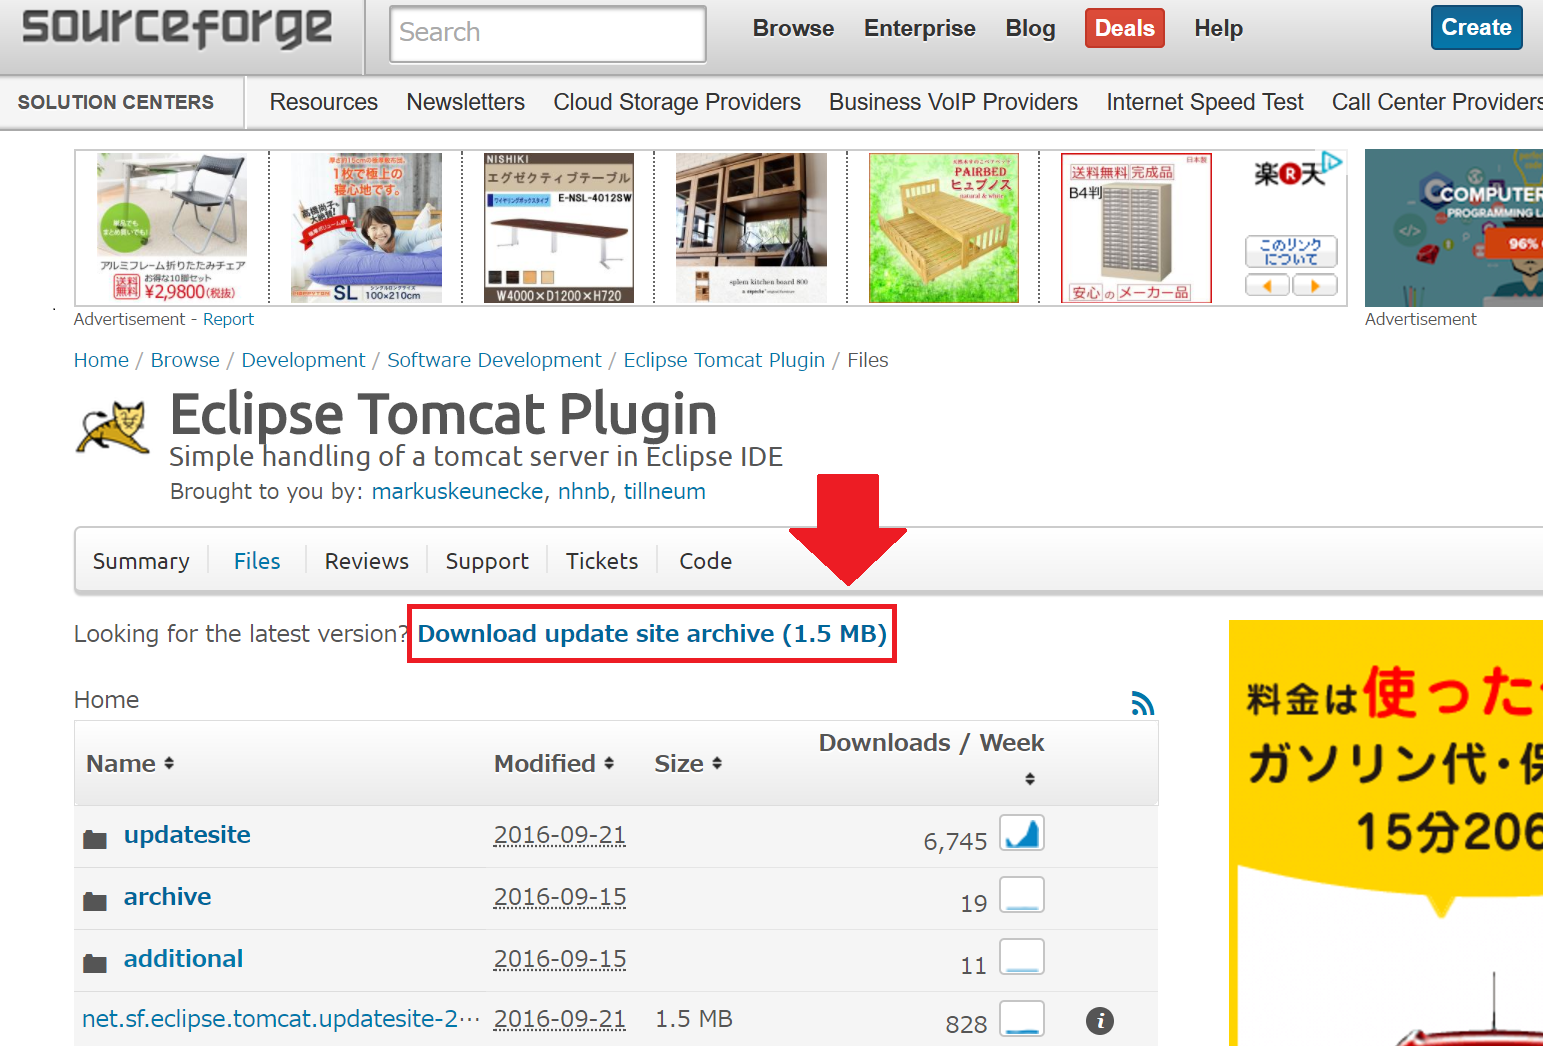 FireShot Capture 7 - Eclipse Tomcat Plugin -_ - https___sourceforge.net_projects_tomcatplugin_files_.png